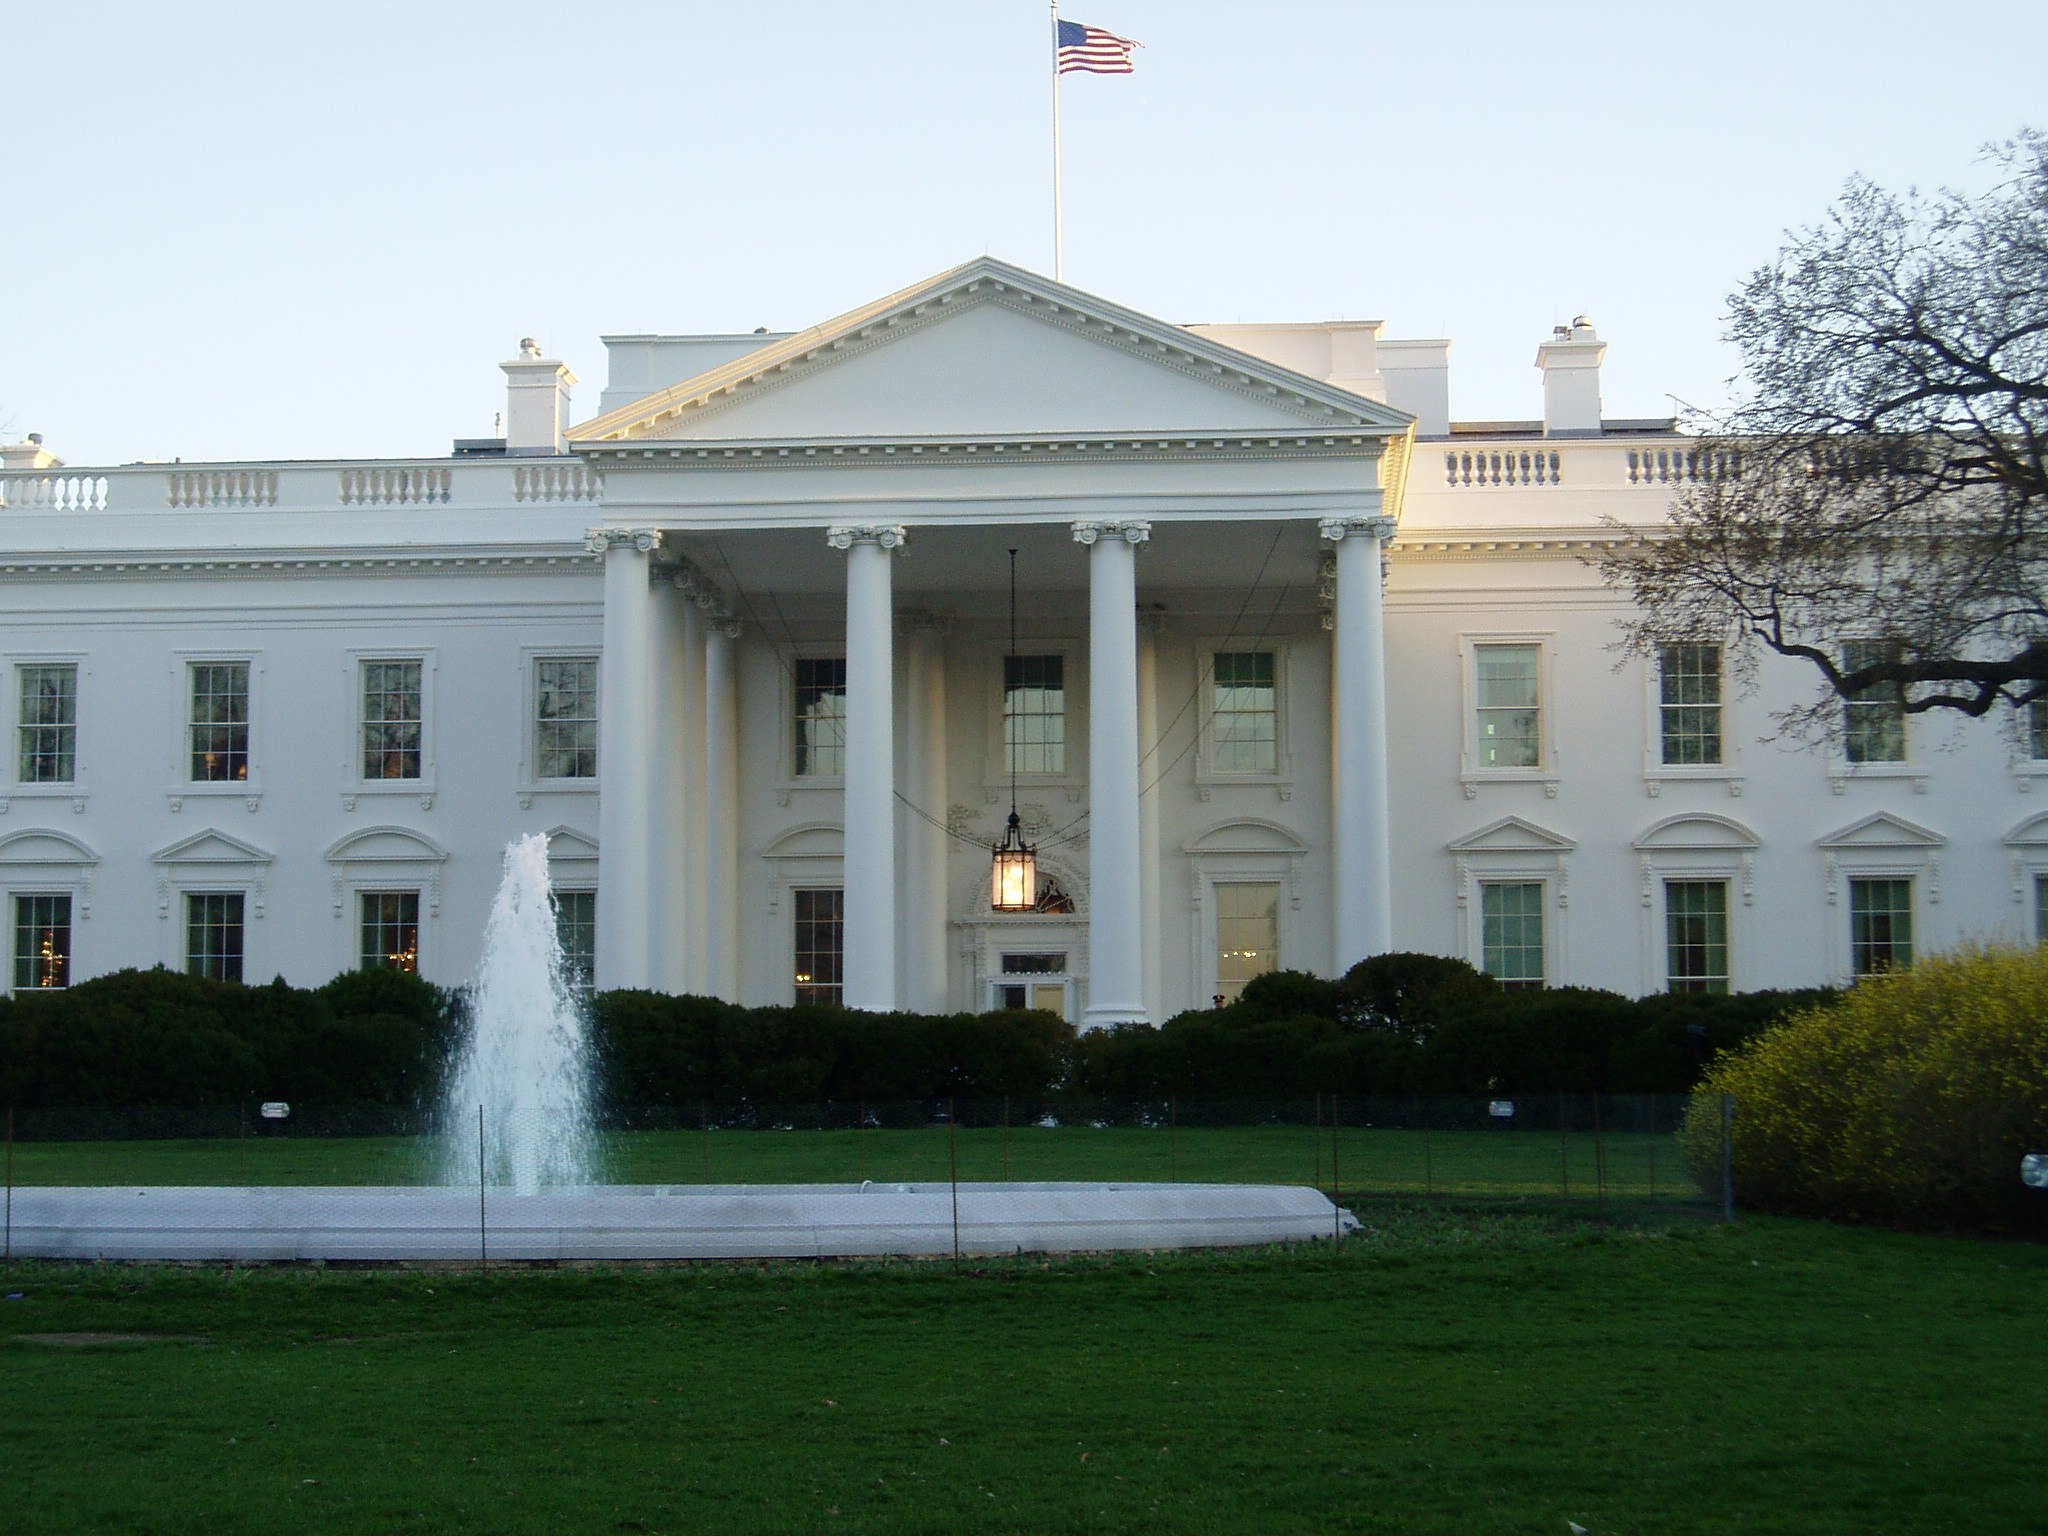 White House cybersecurity coordinator position eliminated